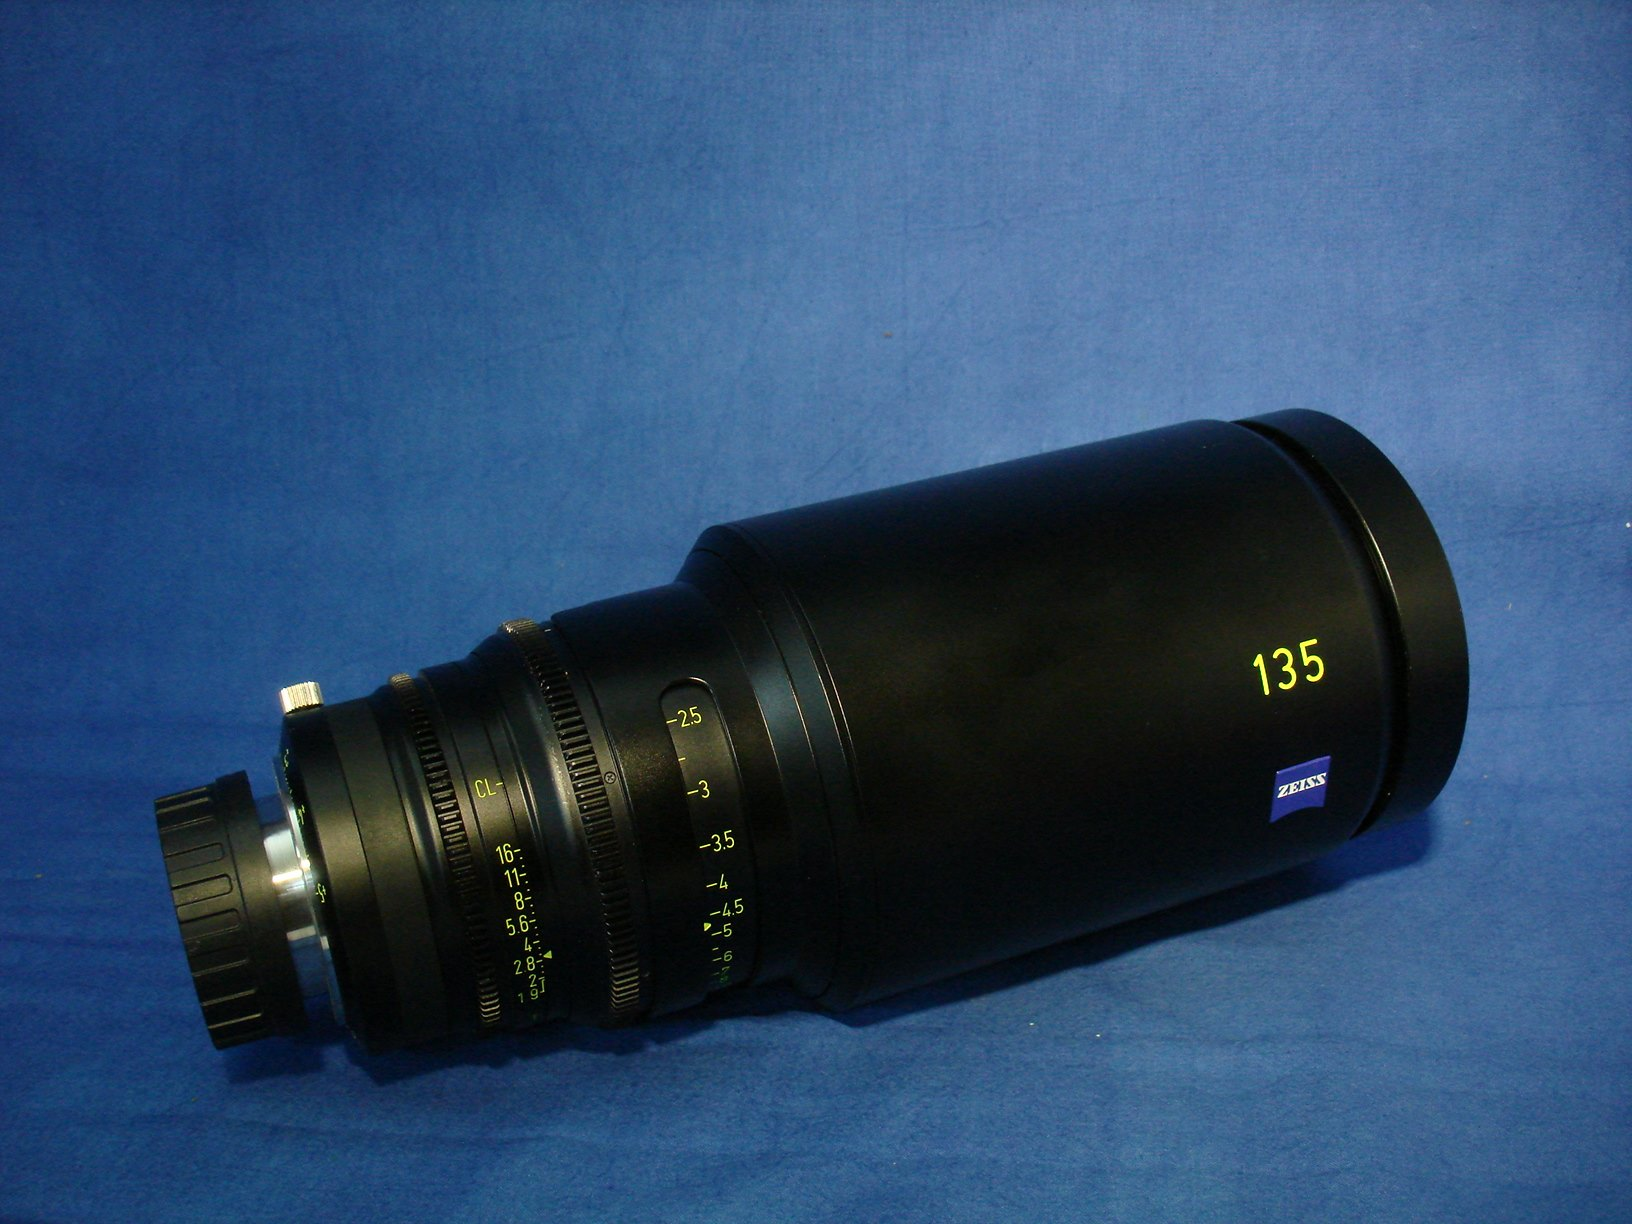 Carl Zeiss 135 mm  - Image #1